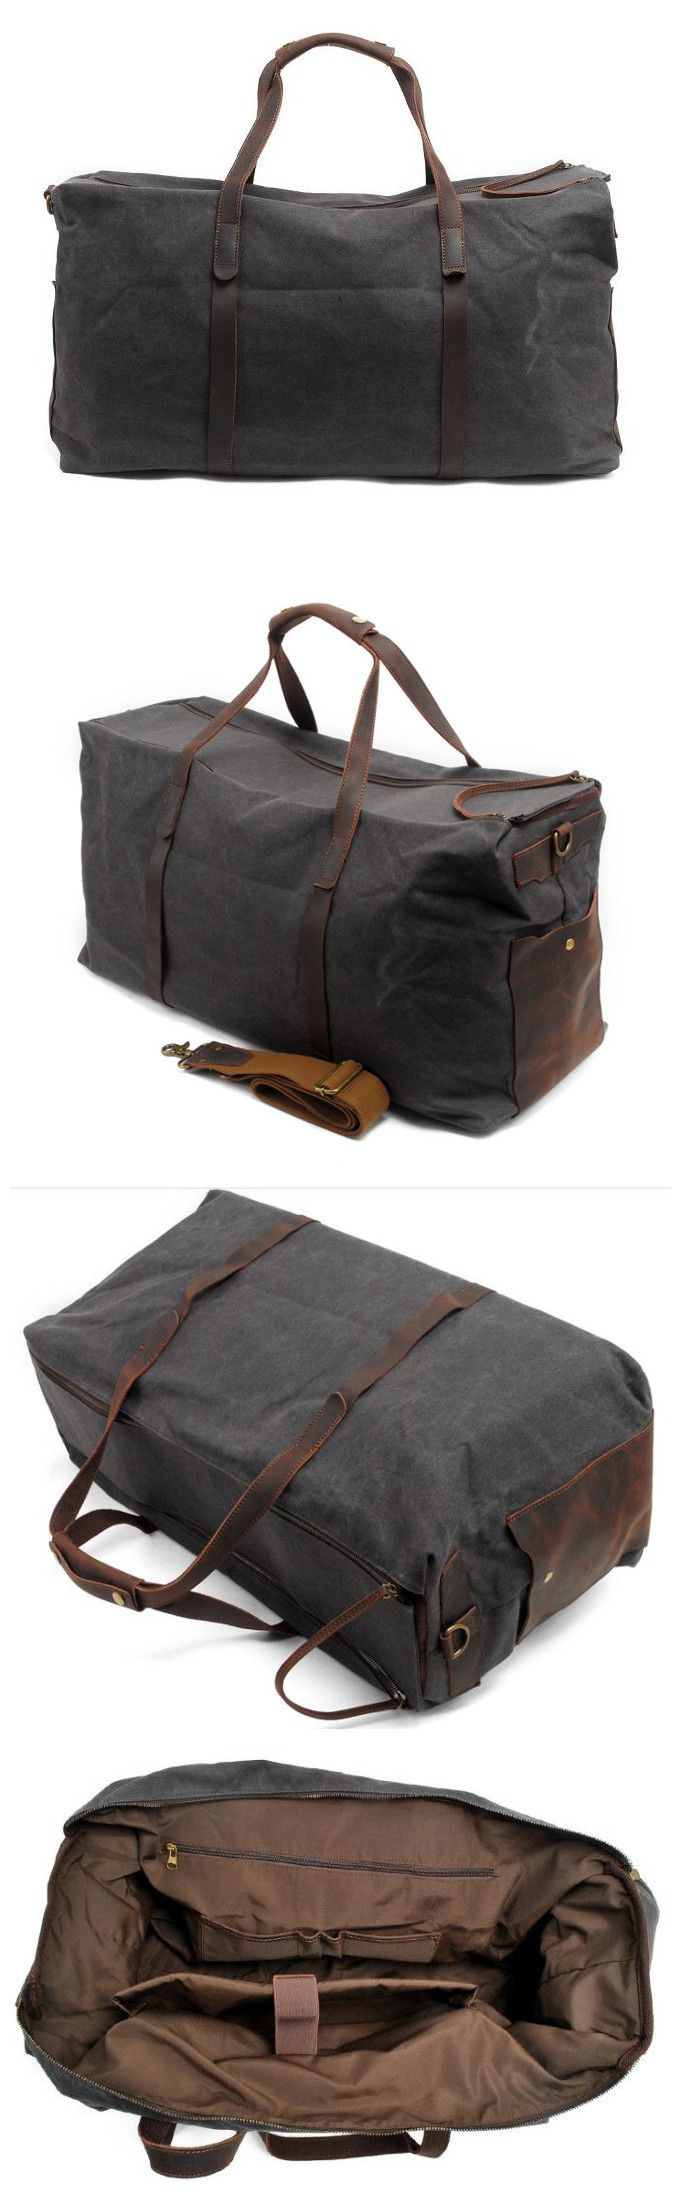 Handmade Waxed Canvas Leather Travel Bag Luggage Weekender Bag Features: • Fabric Lining • Inside zipper pocket • It can hold a 17'' laptop, iPad, A4 document files, magazines, etc. ******************